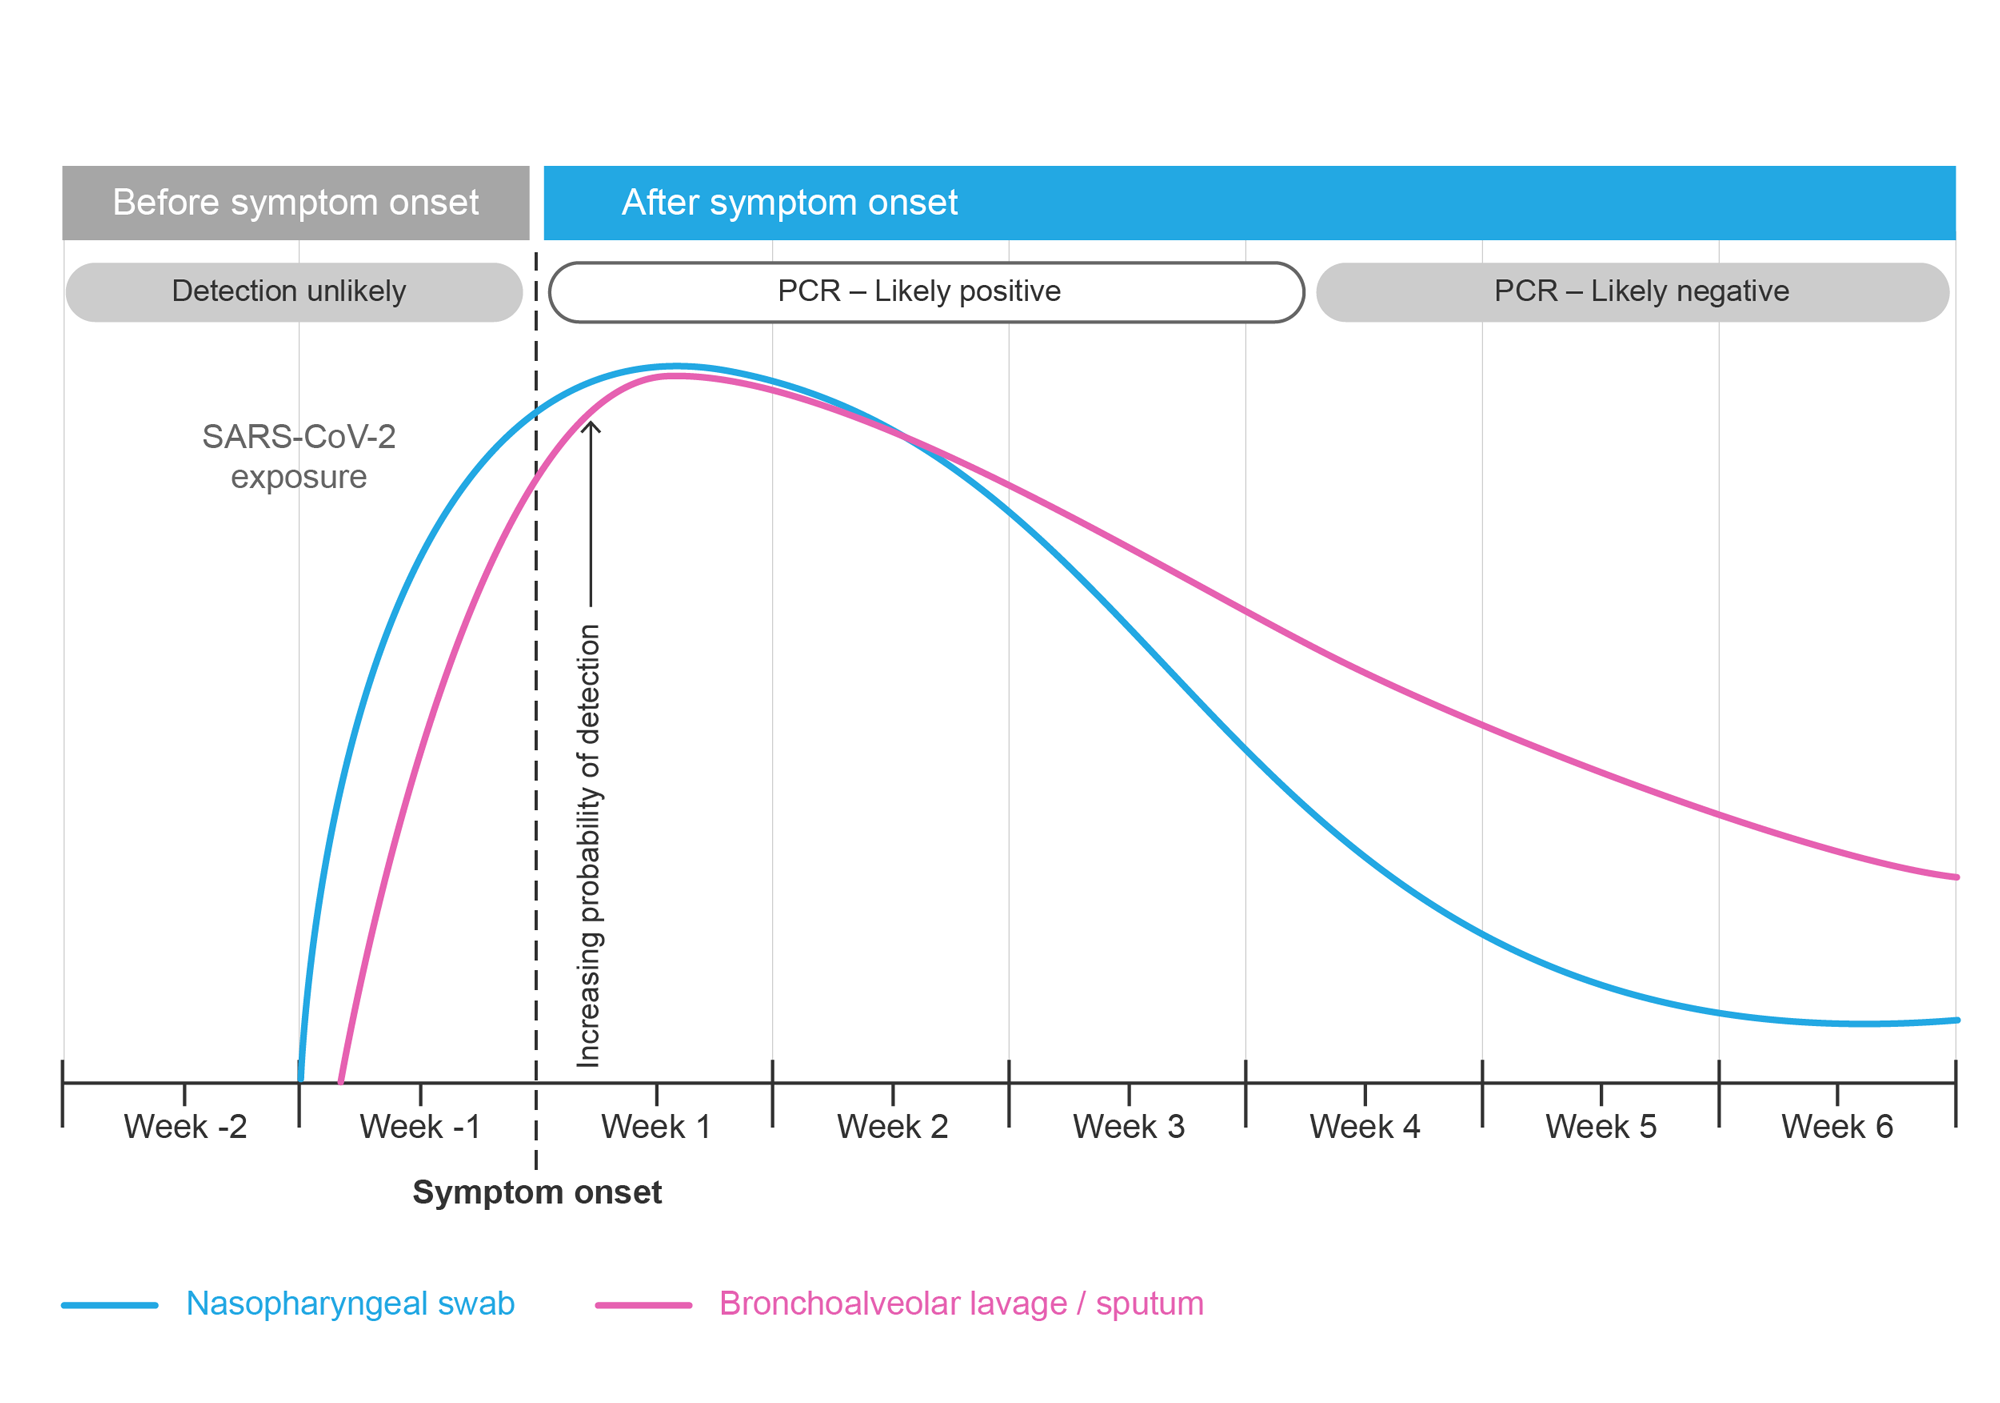 Probability of detecting SARS-CoV-2 with RT-PCR using a nasopharyngeal swab or bronchoalveolar lavage or sputum versus time since symptom onset. Graph.